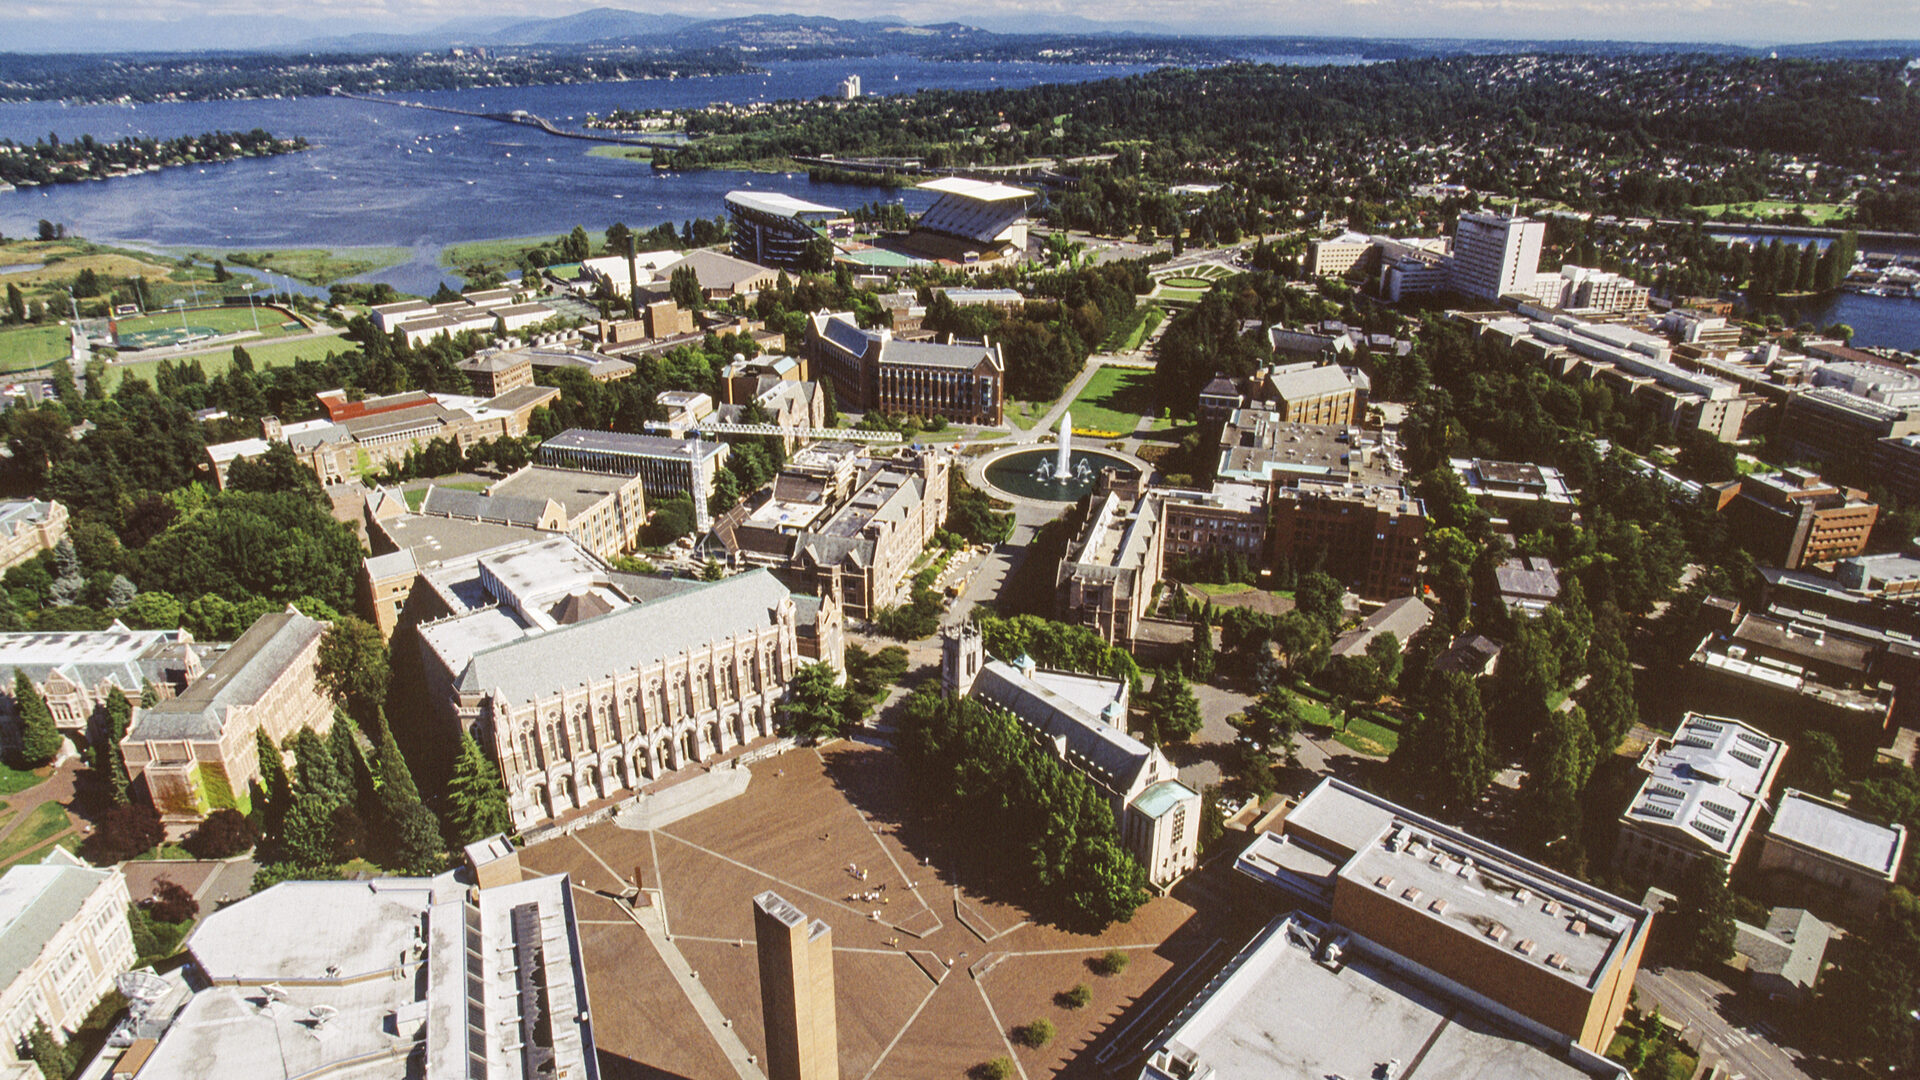 University of Washington Aerial View